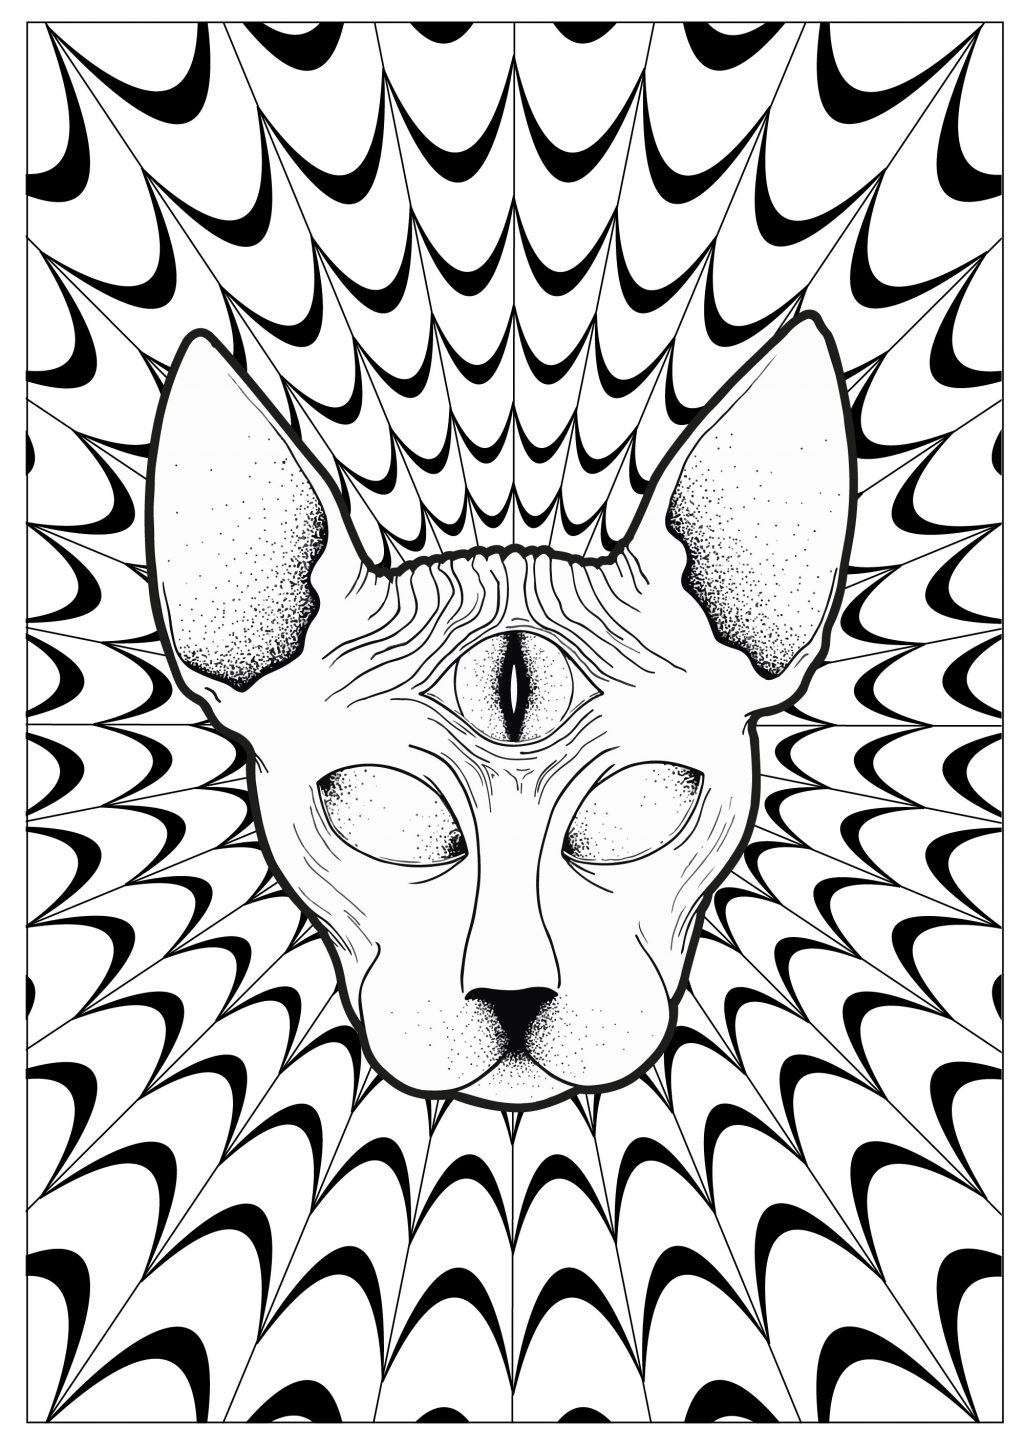 trippy coloring sheets psychedelic pattern coloring page free printable trippy sheets coloring